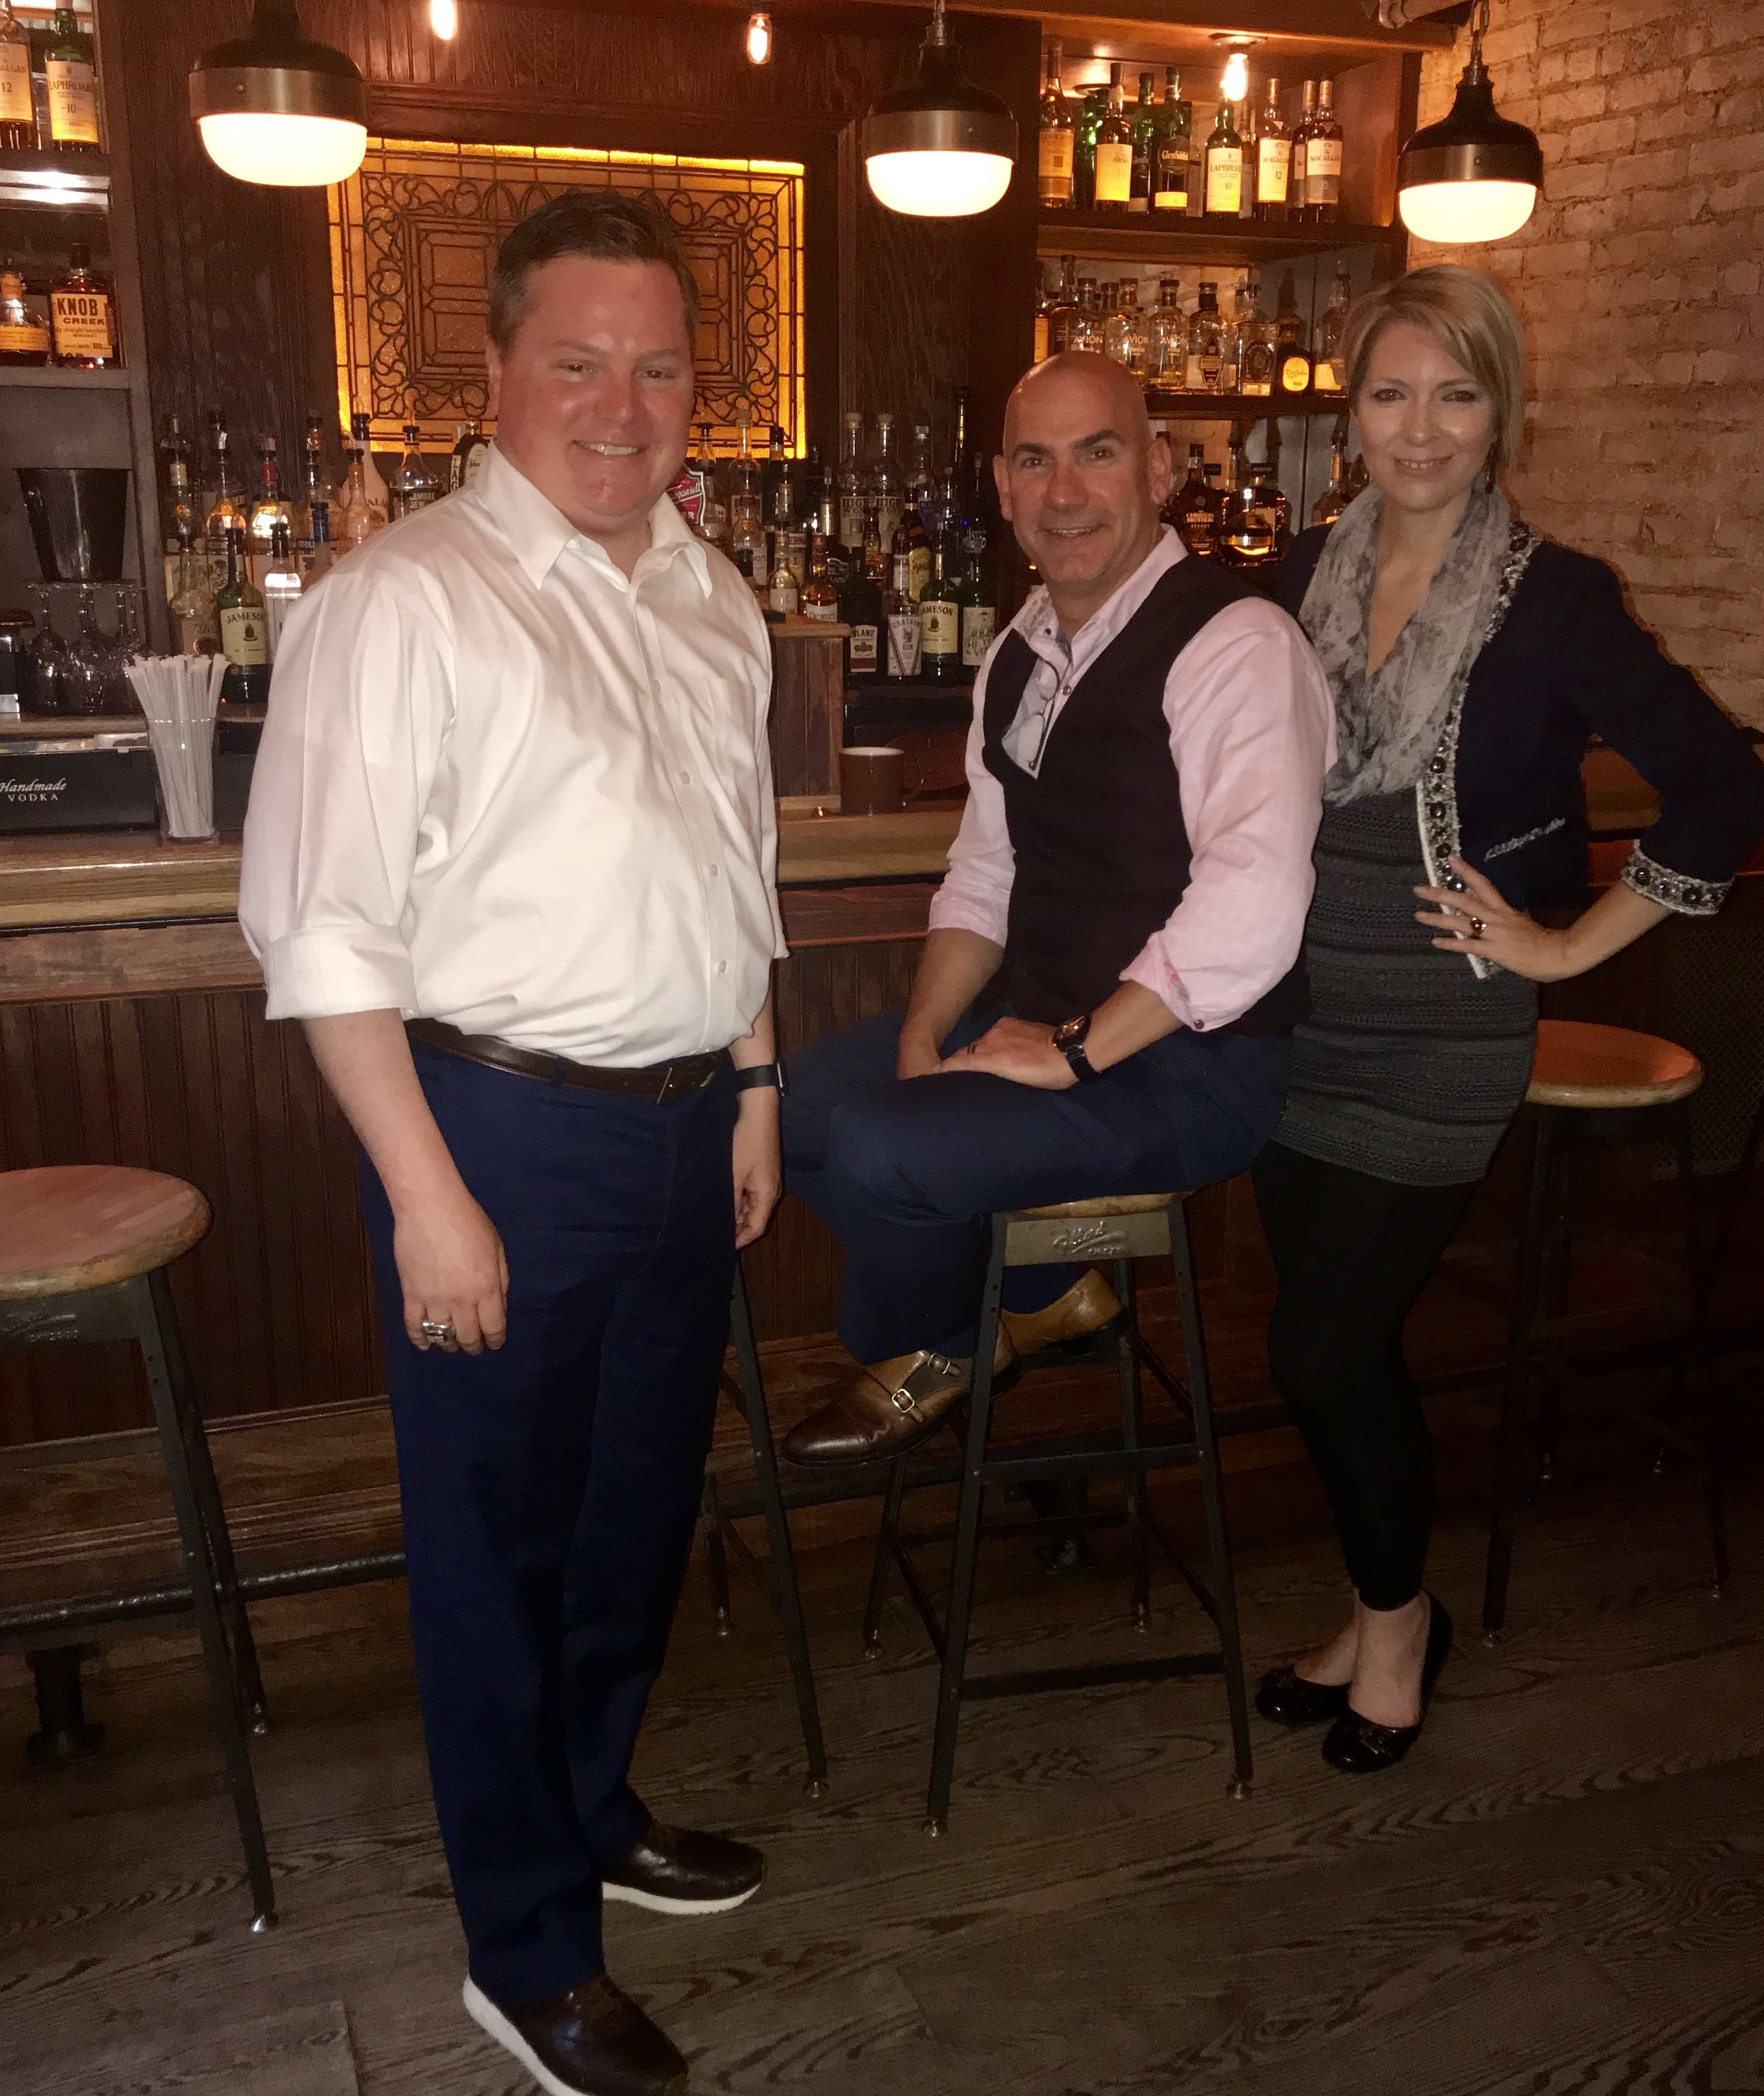 Brandon Leopoldus, Ed Castner and Erica Castner right before FUEL NYC event at Gem Saloon NYC on May 16, 2018.